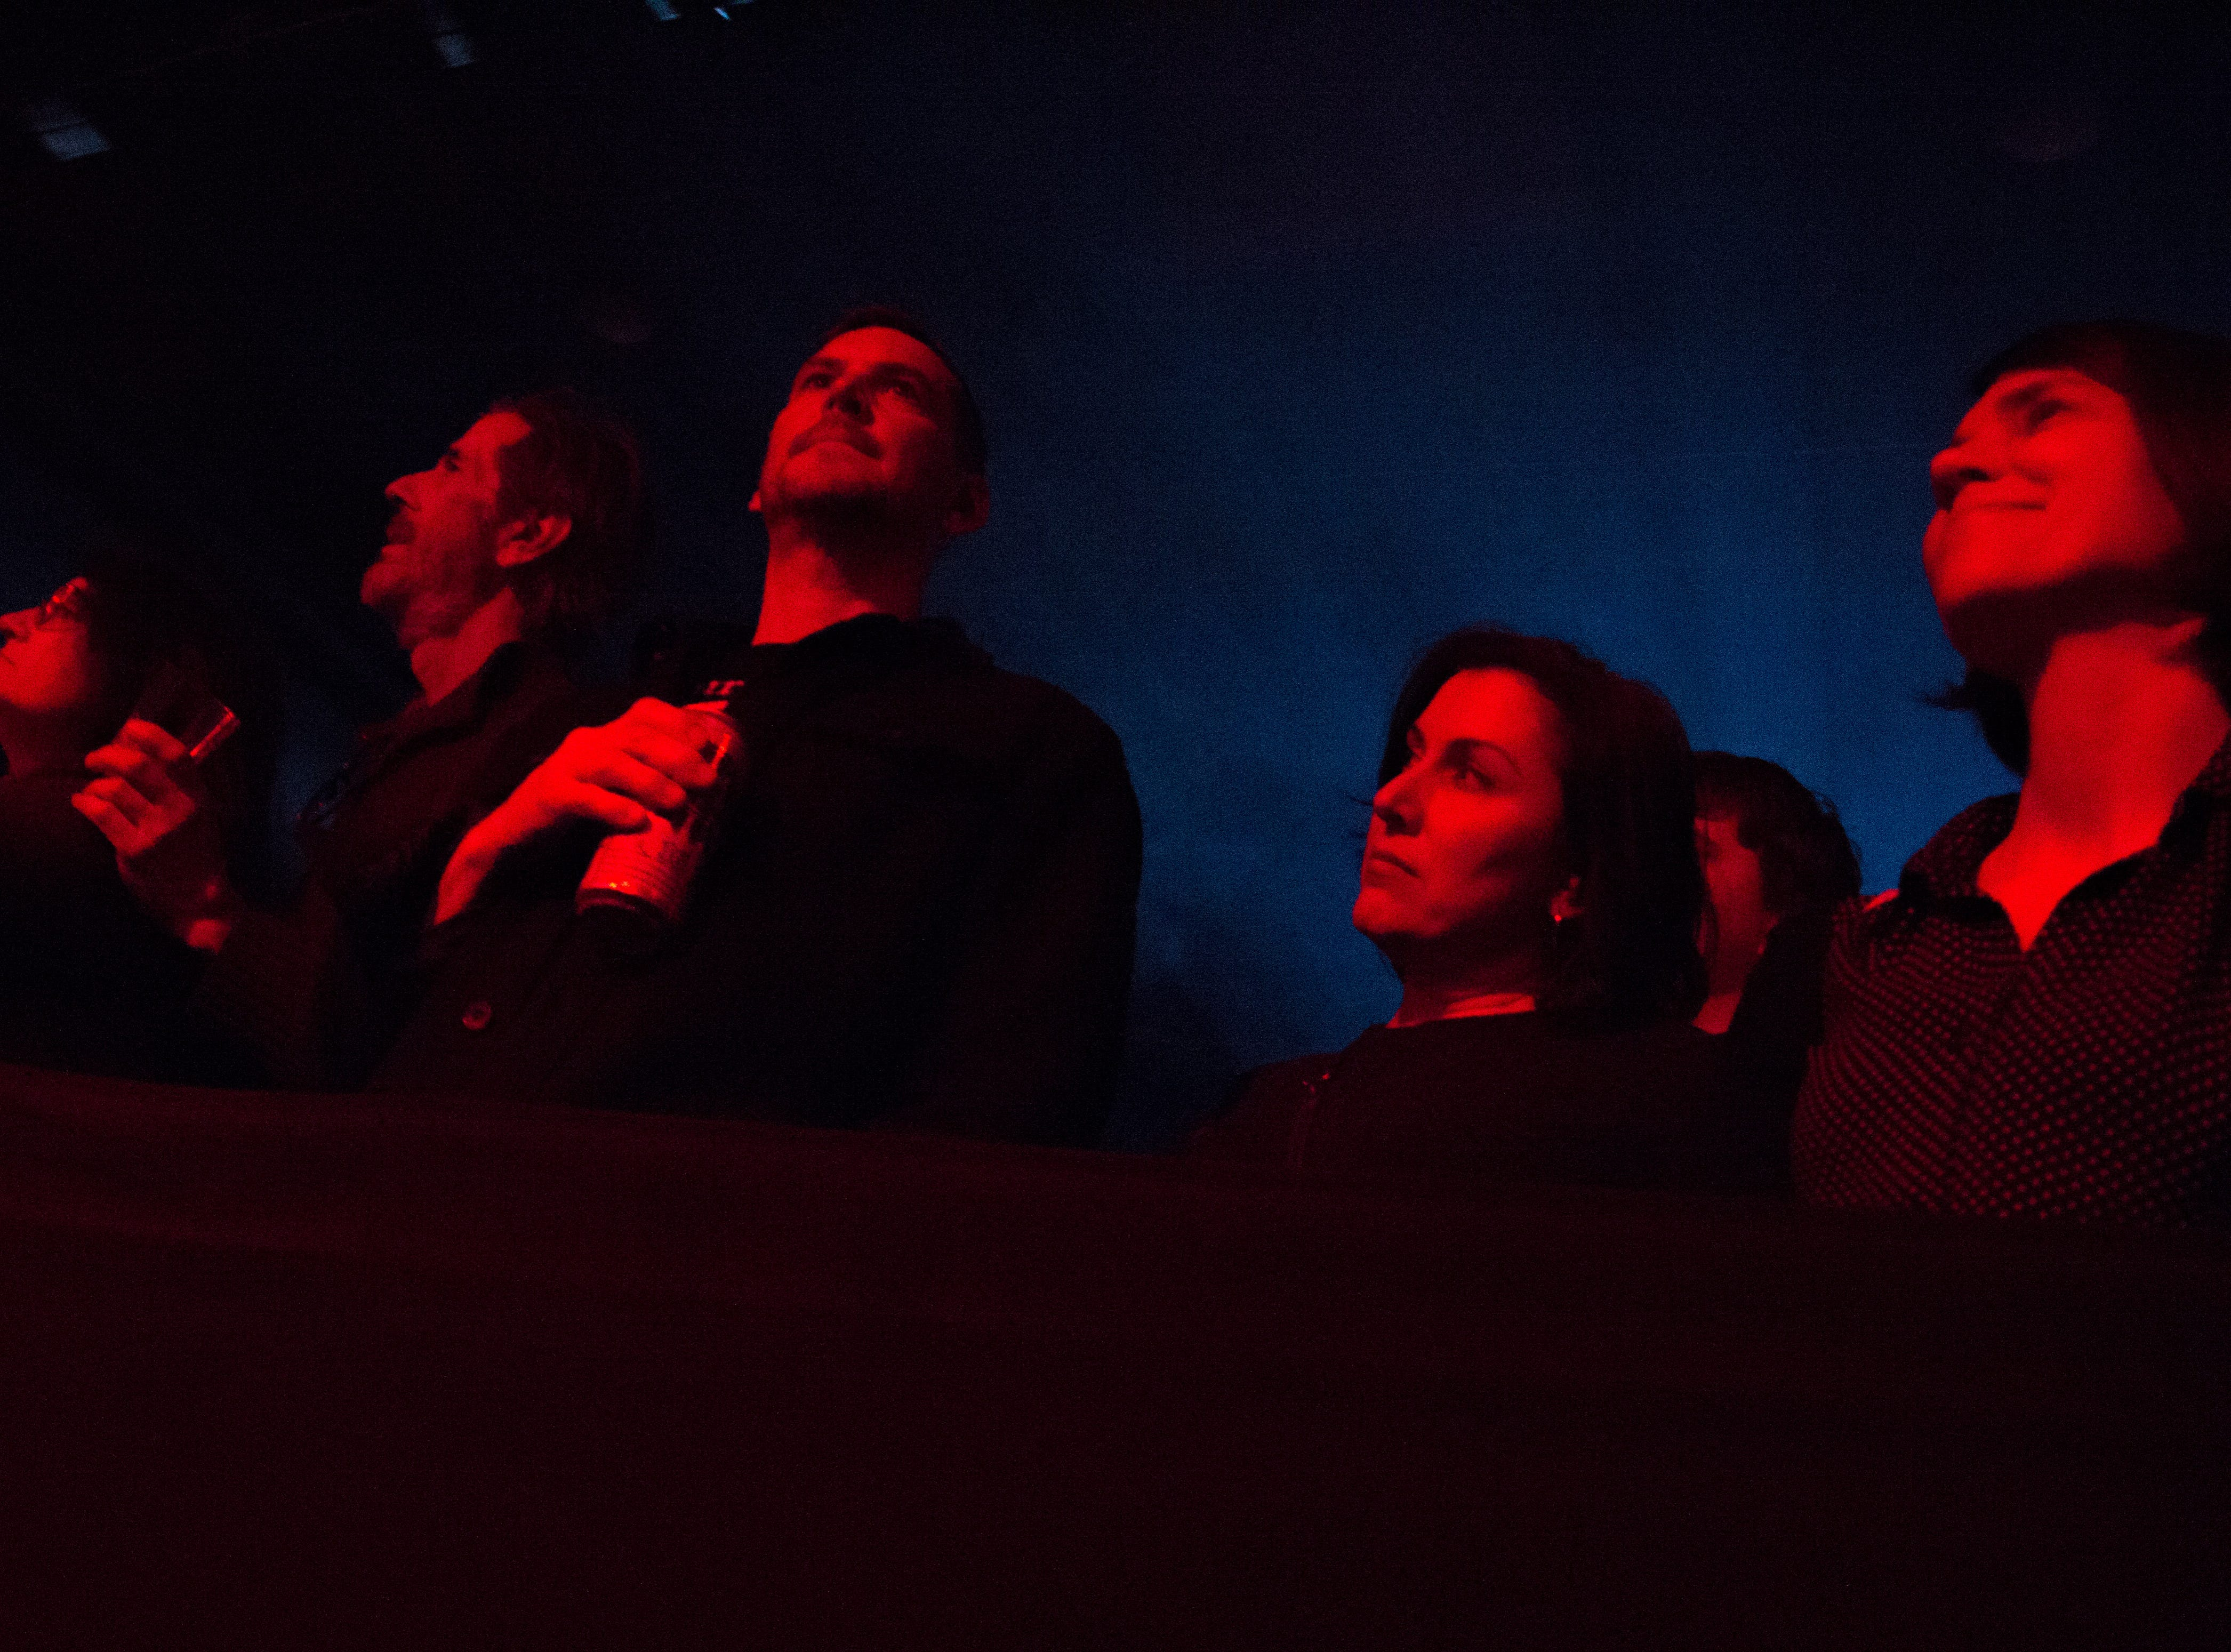 Fans watch Spiritualized performs at the Mill & Mine during Big Ears Festival 2019 in Knoxville, Tennessee on Friday, March 22, 2019.